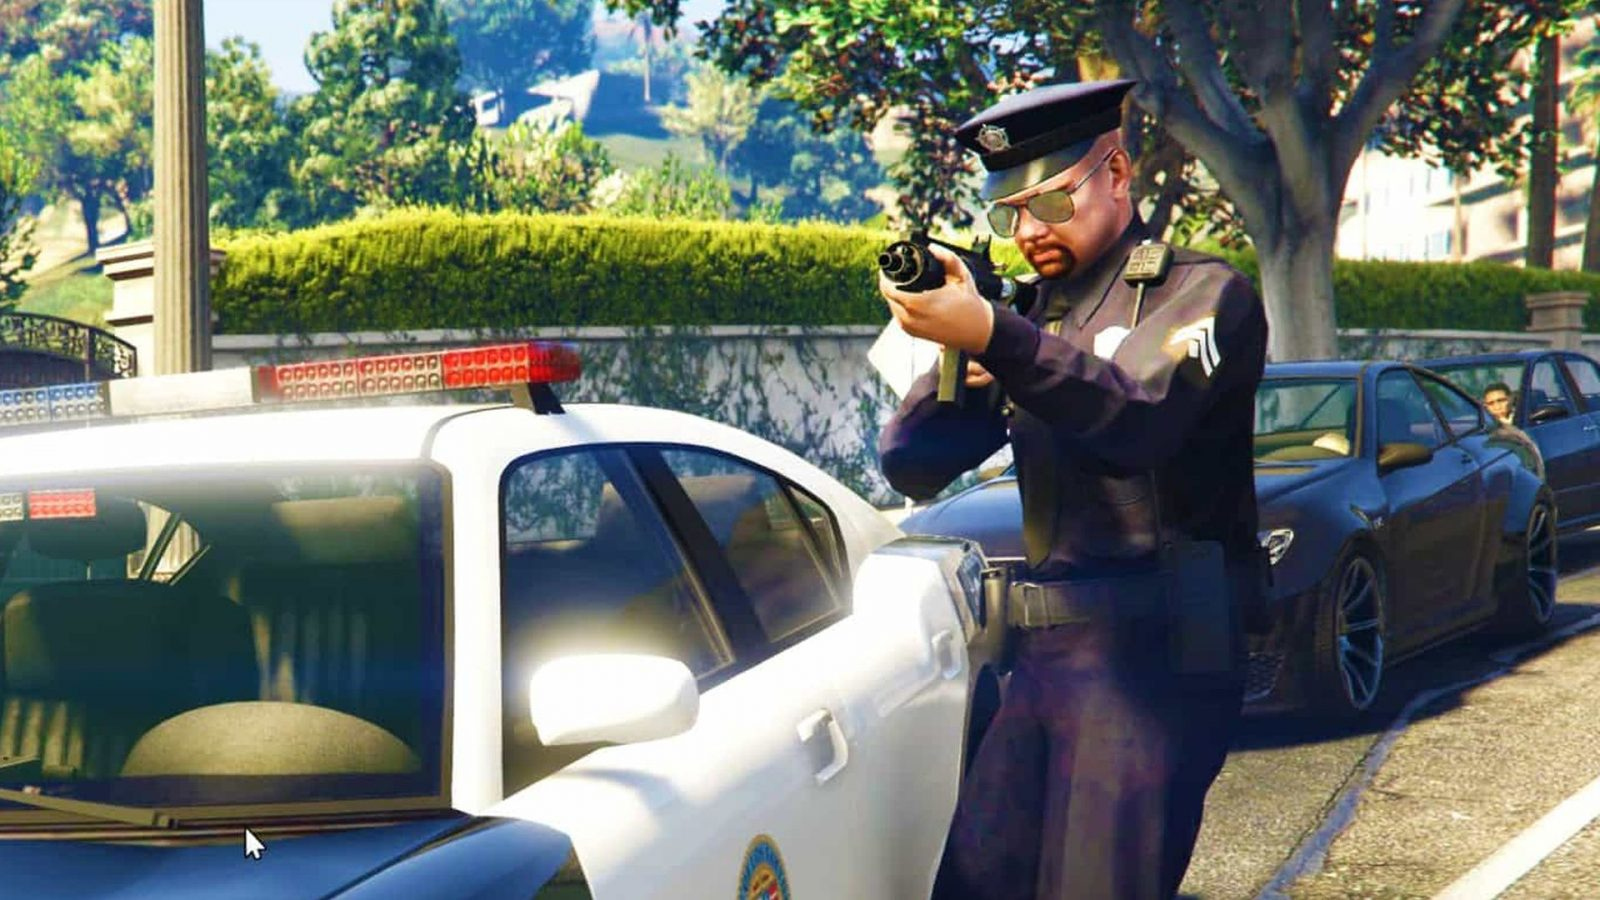 Grand Theft Auto 5's Twitch viewership more than doubled this year